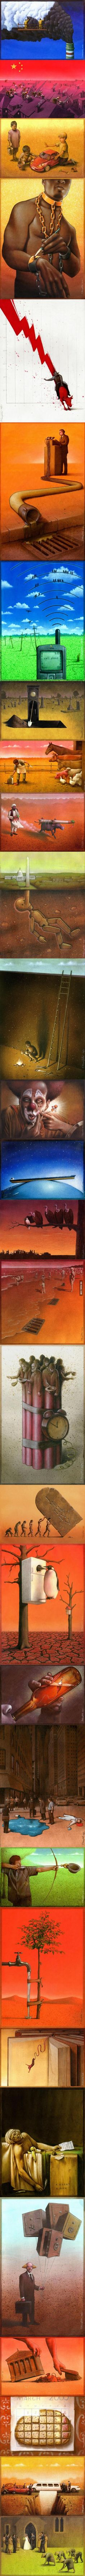 30 satirical images created by pawel kuczynski is part of Protest art - 30 Satirical images created by Pawel Kuczynski Streetart Easy Cartoon Kunst, Protest Art, Oeuvre D'art, Best Funny Pictures, Les Oeuvres, Amazing Art, Awesome, Cool Art, Concept Art